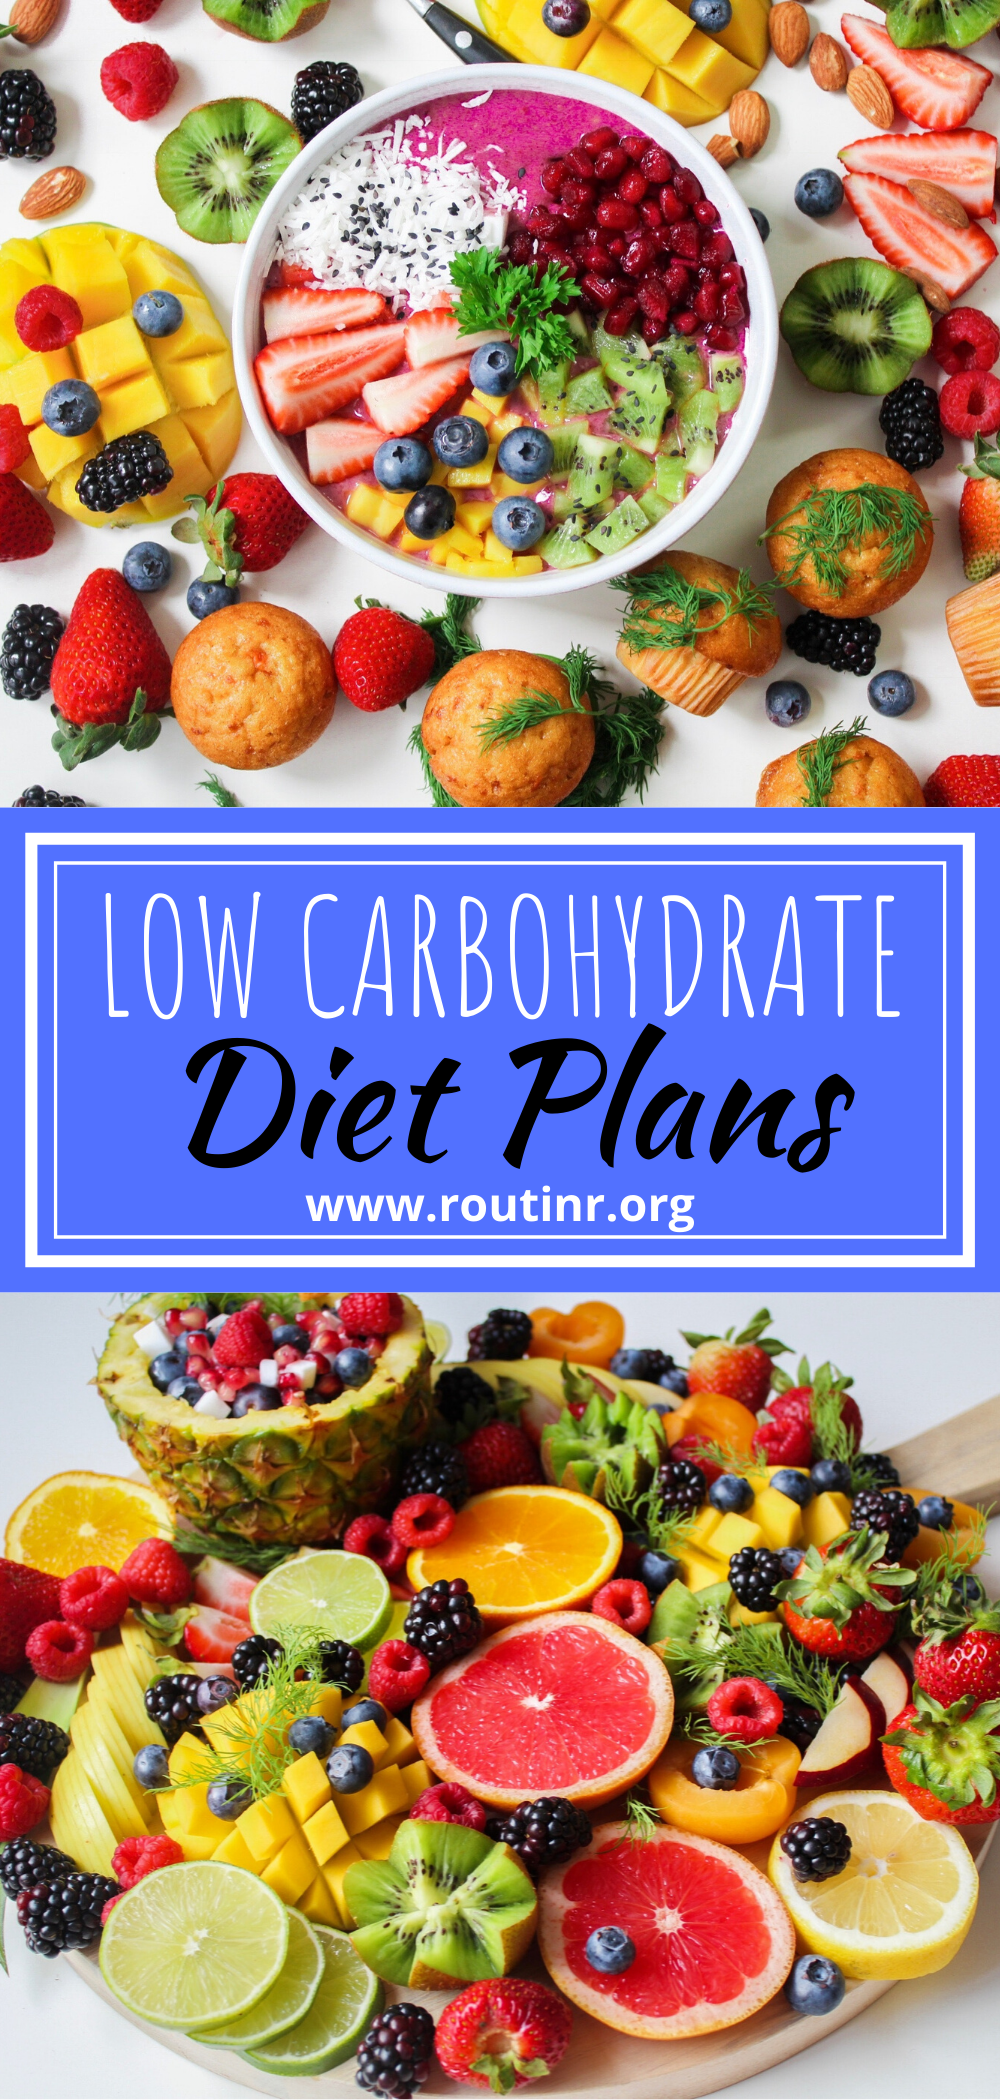 LOW CARBOHYDRATE DIET PLANS in 2020 Low carbohydrate